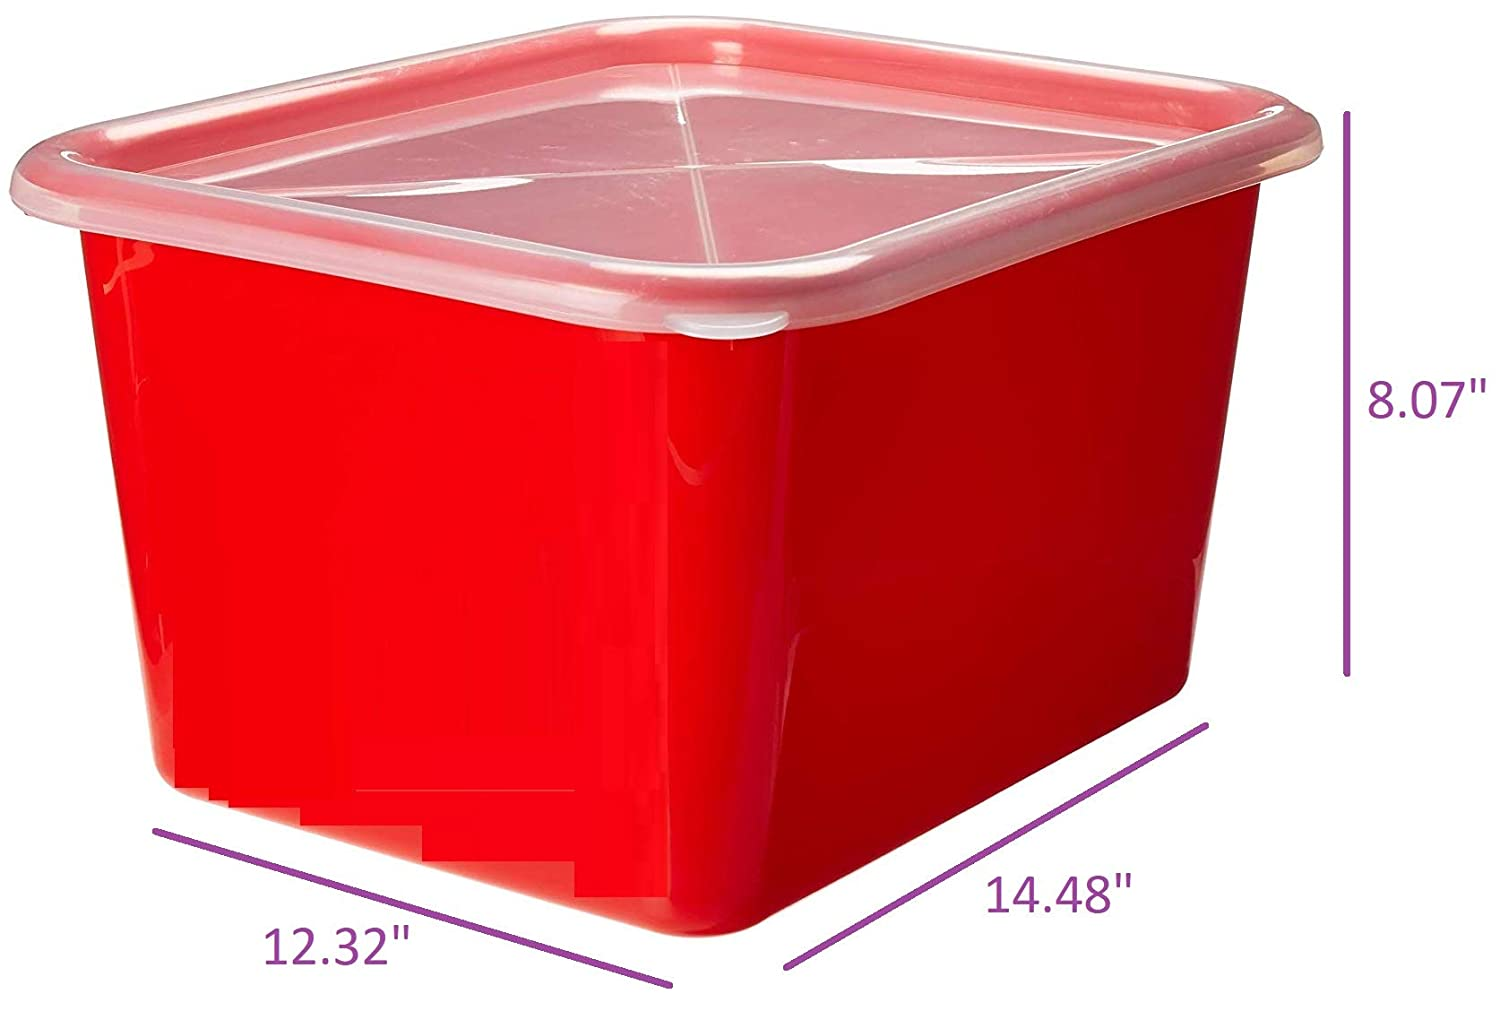 School Kids Classroom Closet Book Box Covered Cubby Zilpoo 4-Pack Toy Storage Organizer Bins with Lids 15 Quart Stackable Plastic Containers with Clear Cover